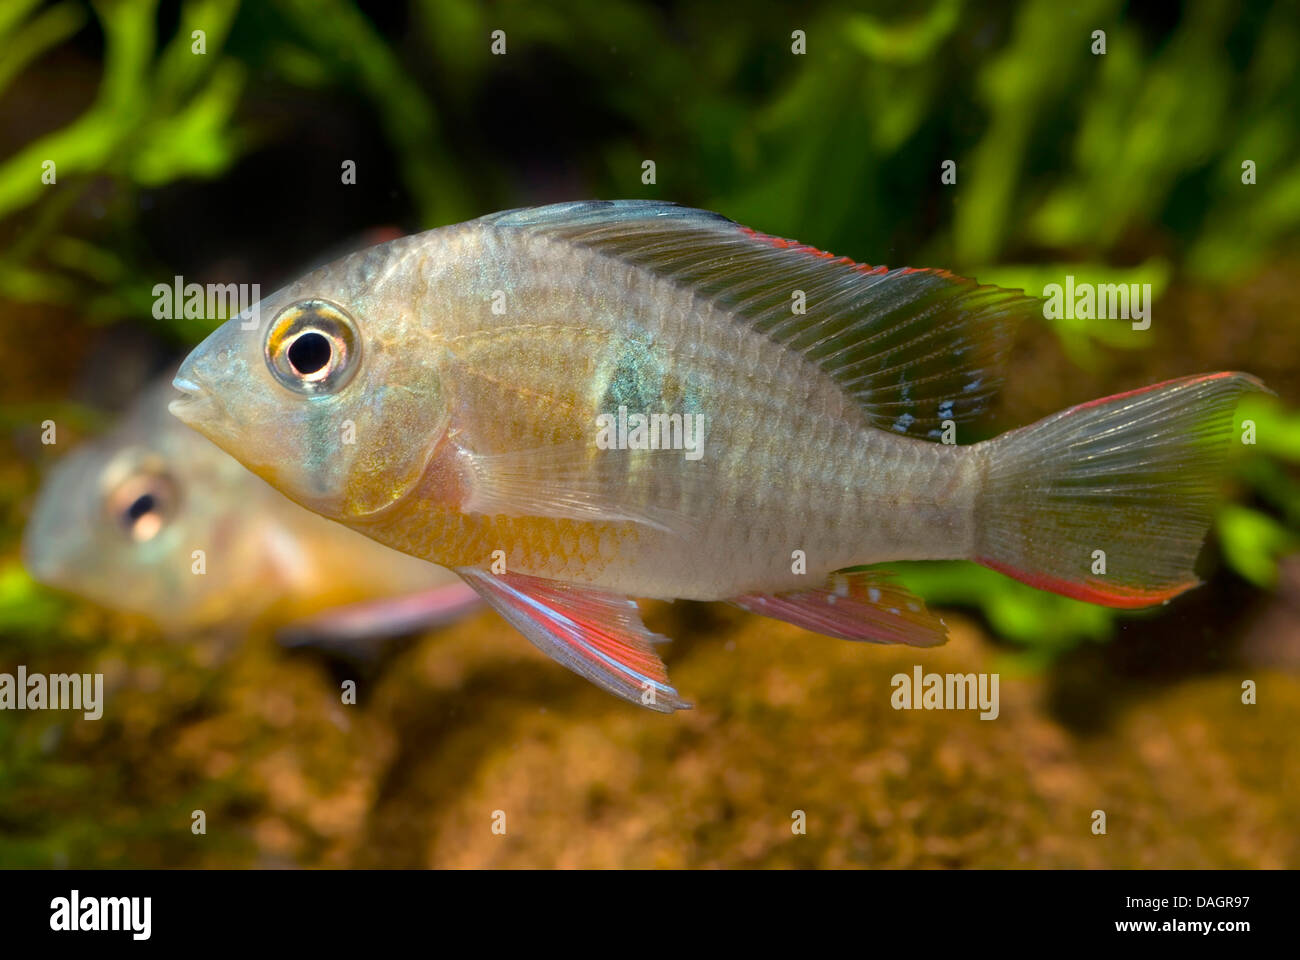 Bolivian butterfly dwarf Cichlid (Mikrogeophagus altispinosus), swimming - Stock Image